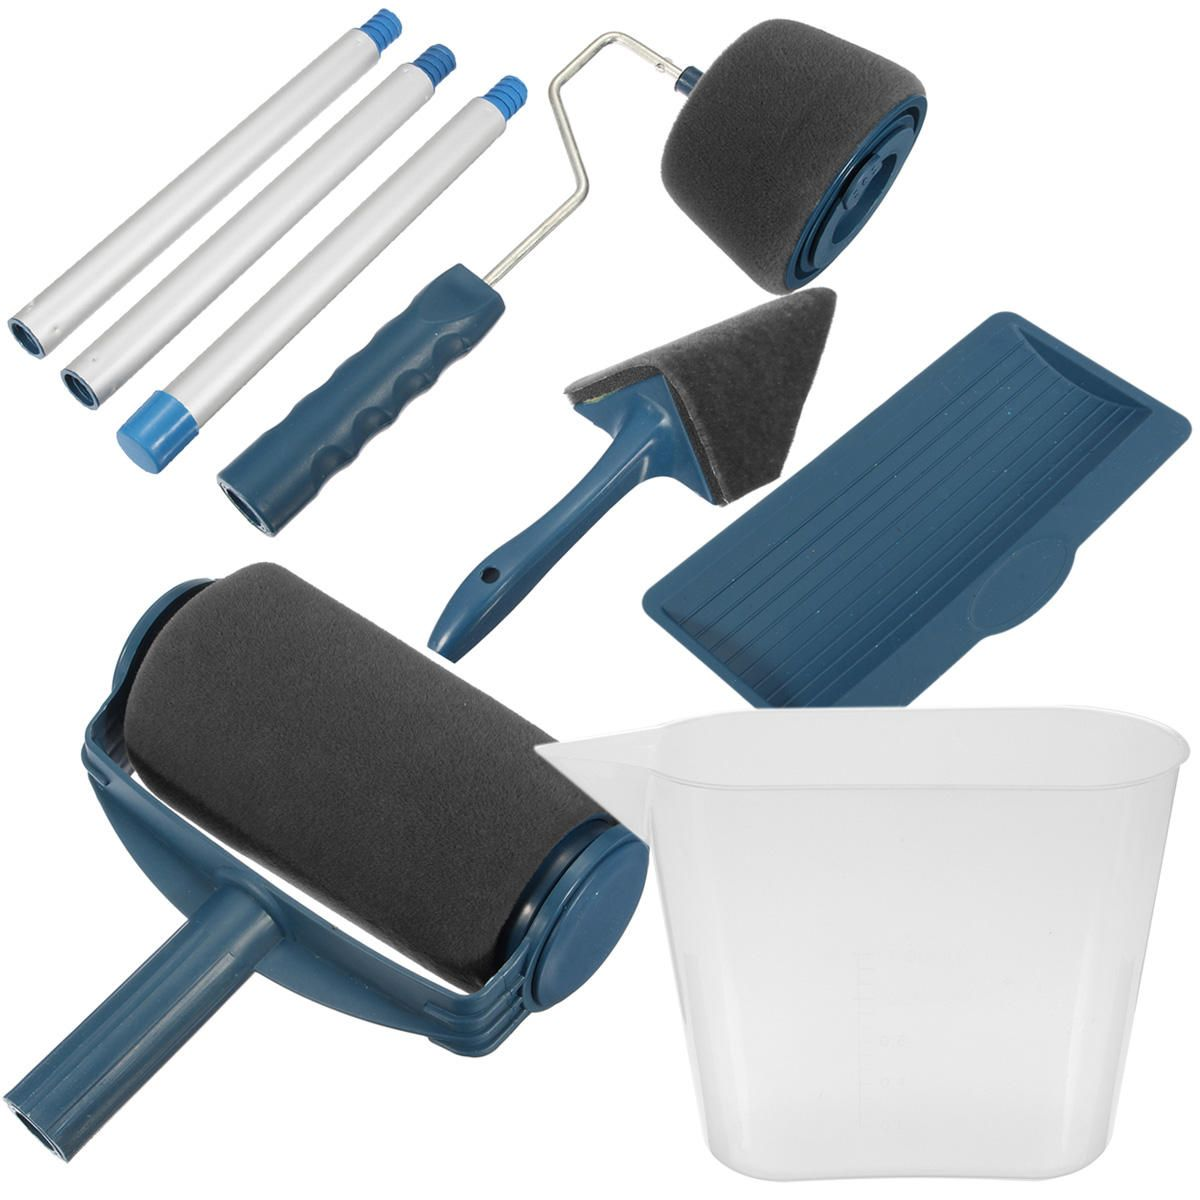 19 99 8pcs Diy Paint Roller Kit Painting Seamless Brush Tool With Handle For Wall Ceiling Decoration 8pcs Paint Roller Painting Seamles Blue Painted Walls Paint Runner Diy Painting